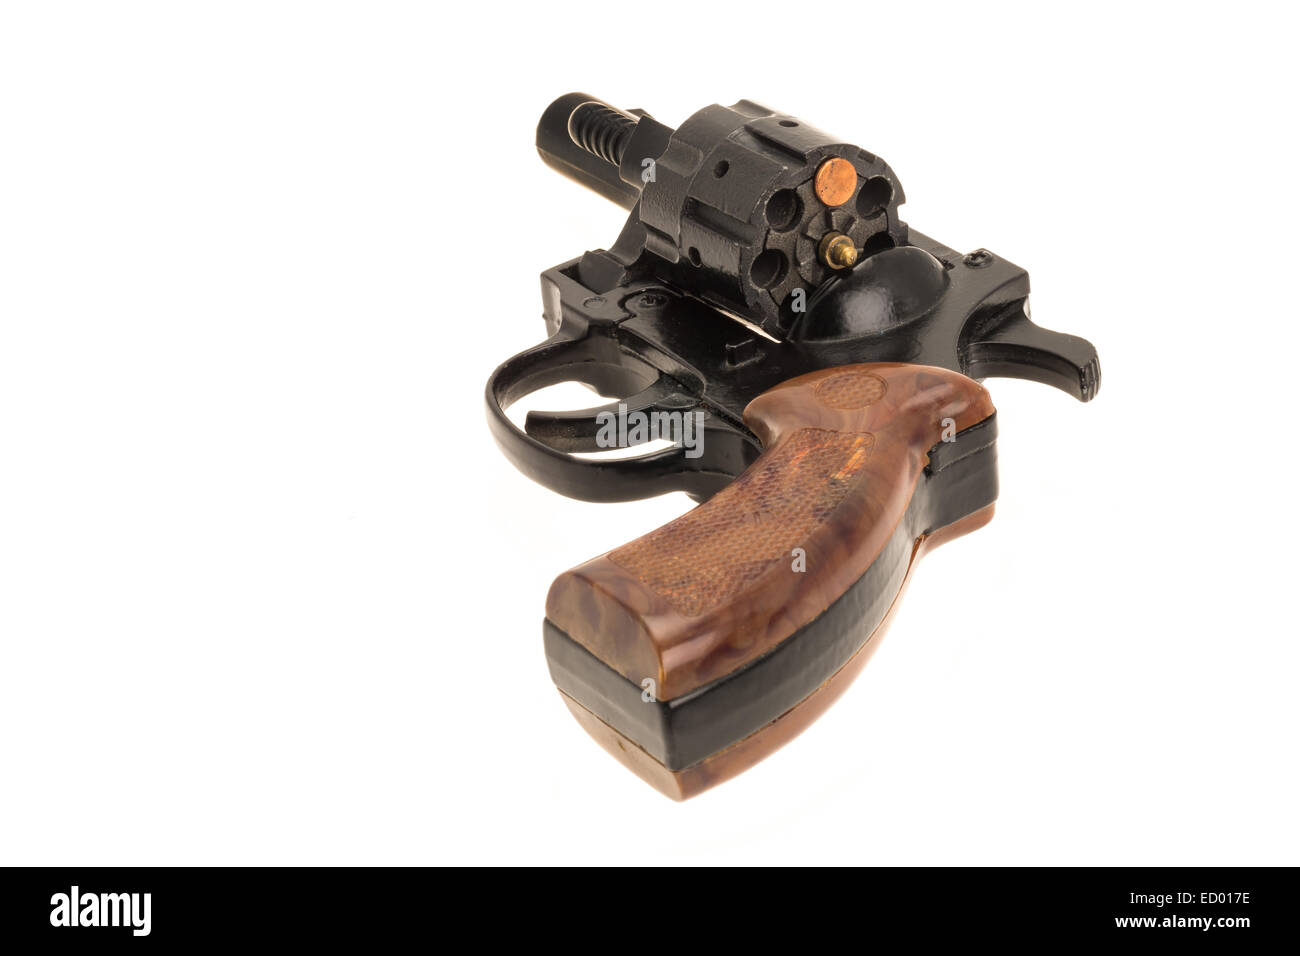 A handgun with one bullet - studio shot with a white background - Stock Image